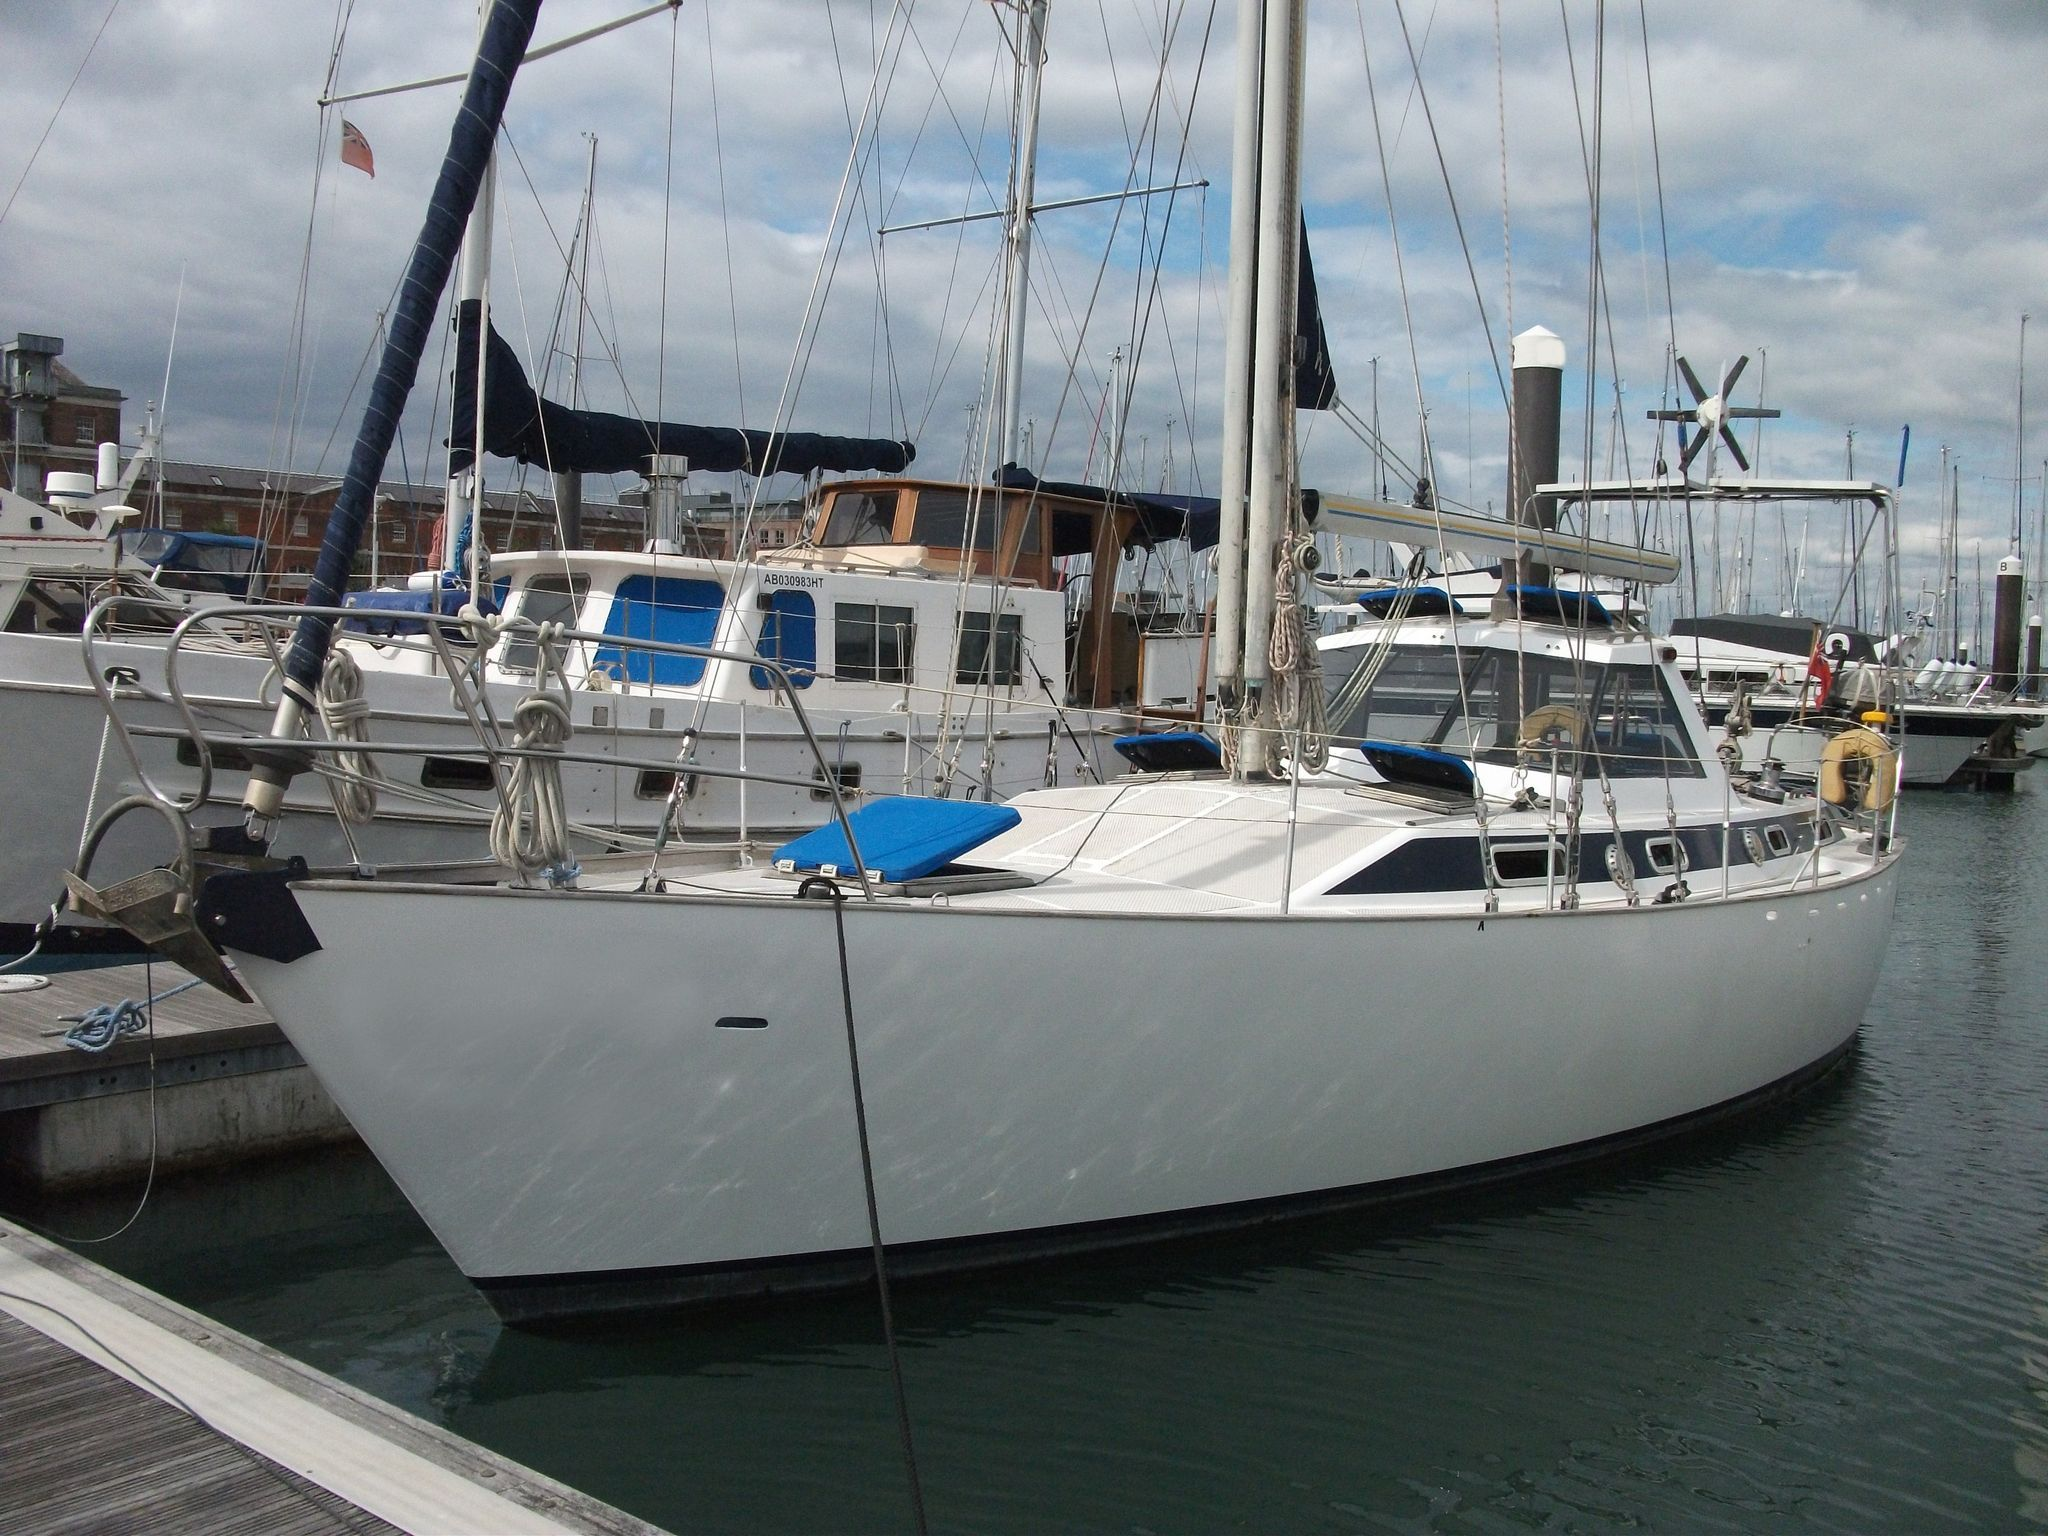 Steel Blue Water Cruising Yacht Lifting Winged Keel